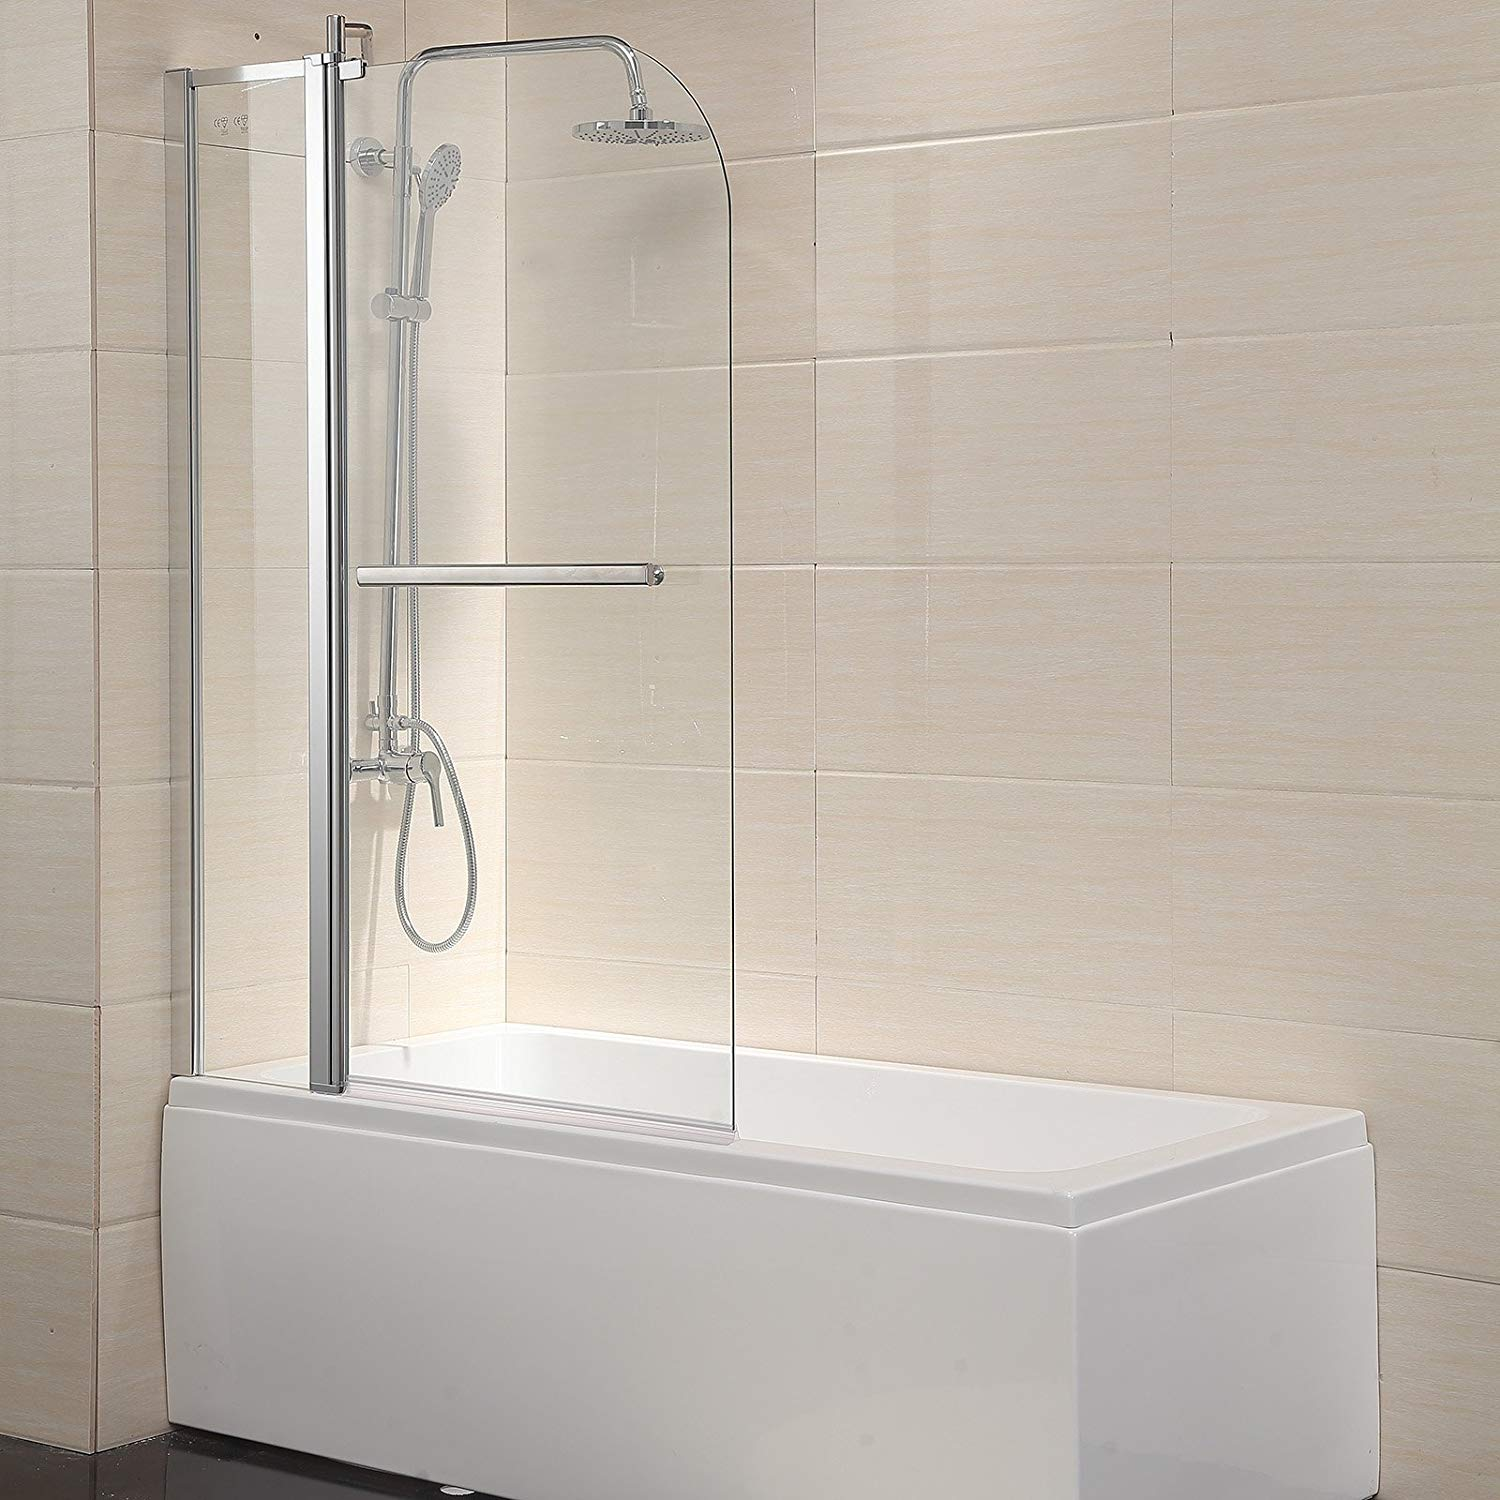 Top 10 Best Glass Shower Doors In 2019 Reviews Top Best